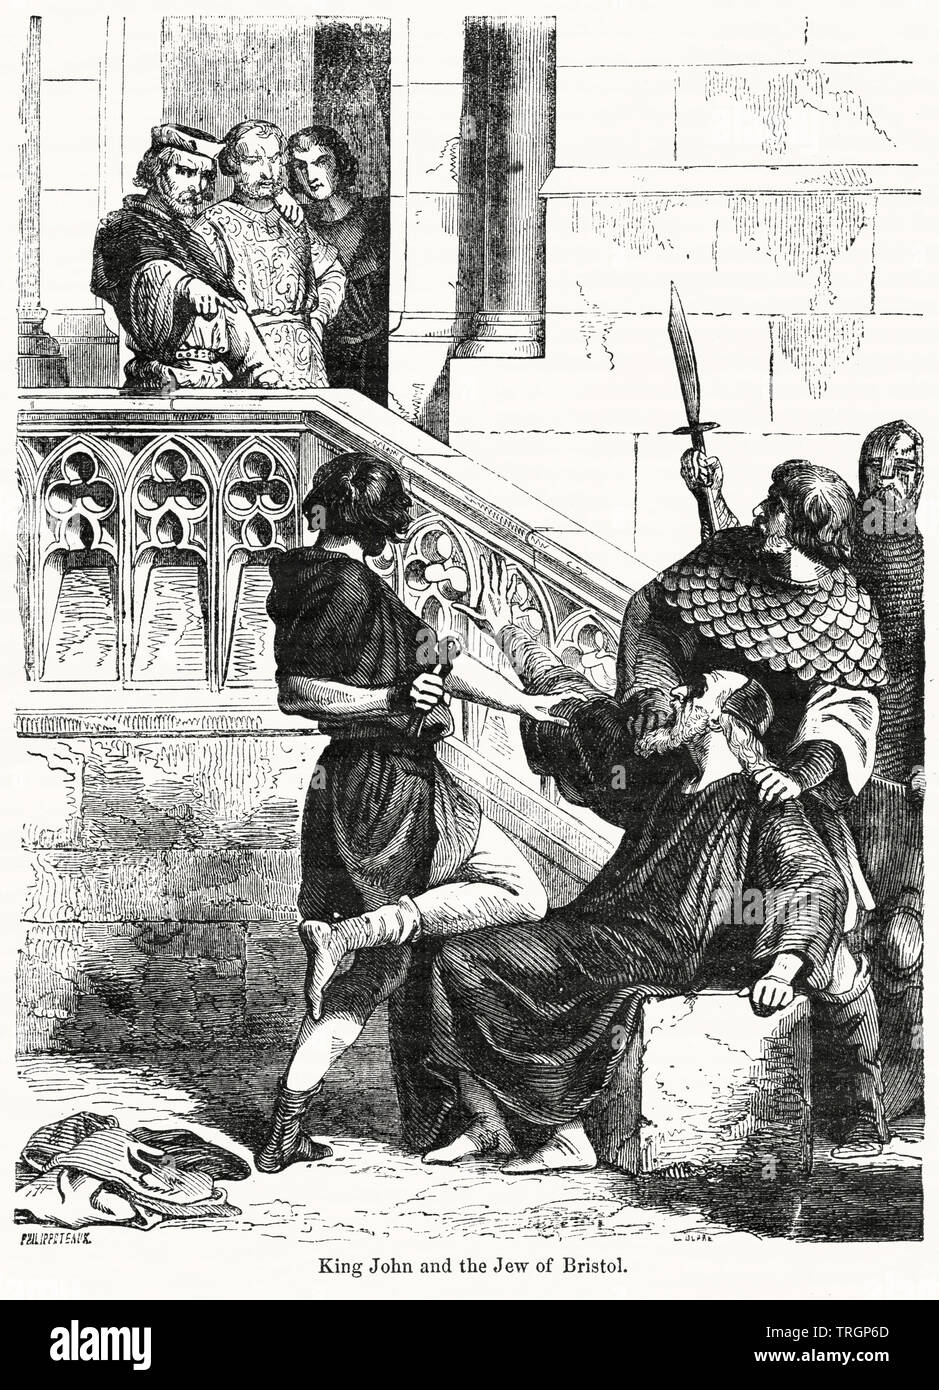 King John and the Jew of Bristol, Illustration from John Cassell's Illustrated History of England, Vol. I from the earliest period to the reign of Edward the Fourth, Cassell, Petter and Galpin, 1857 - Stock Image